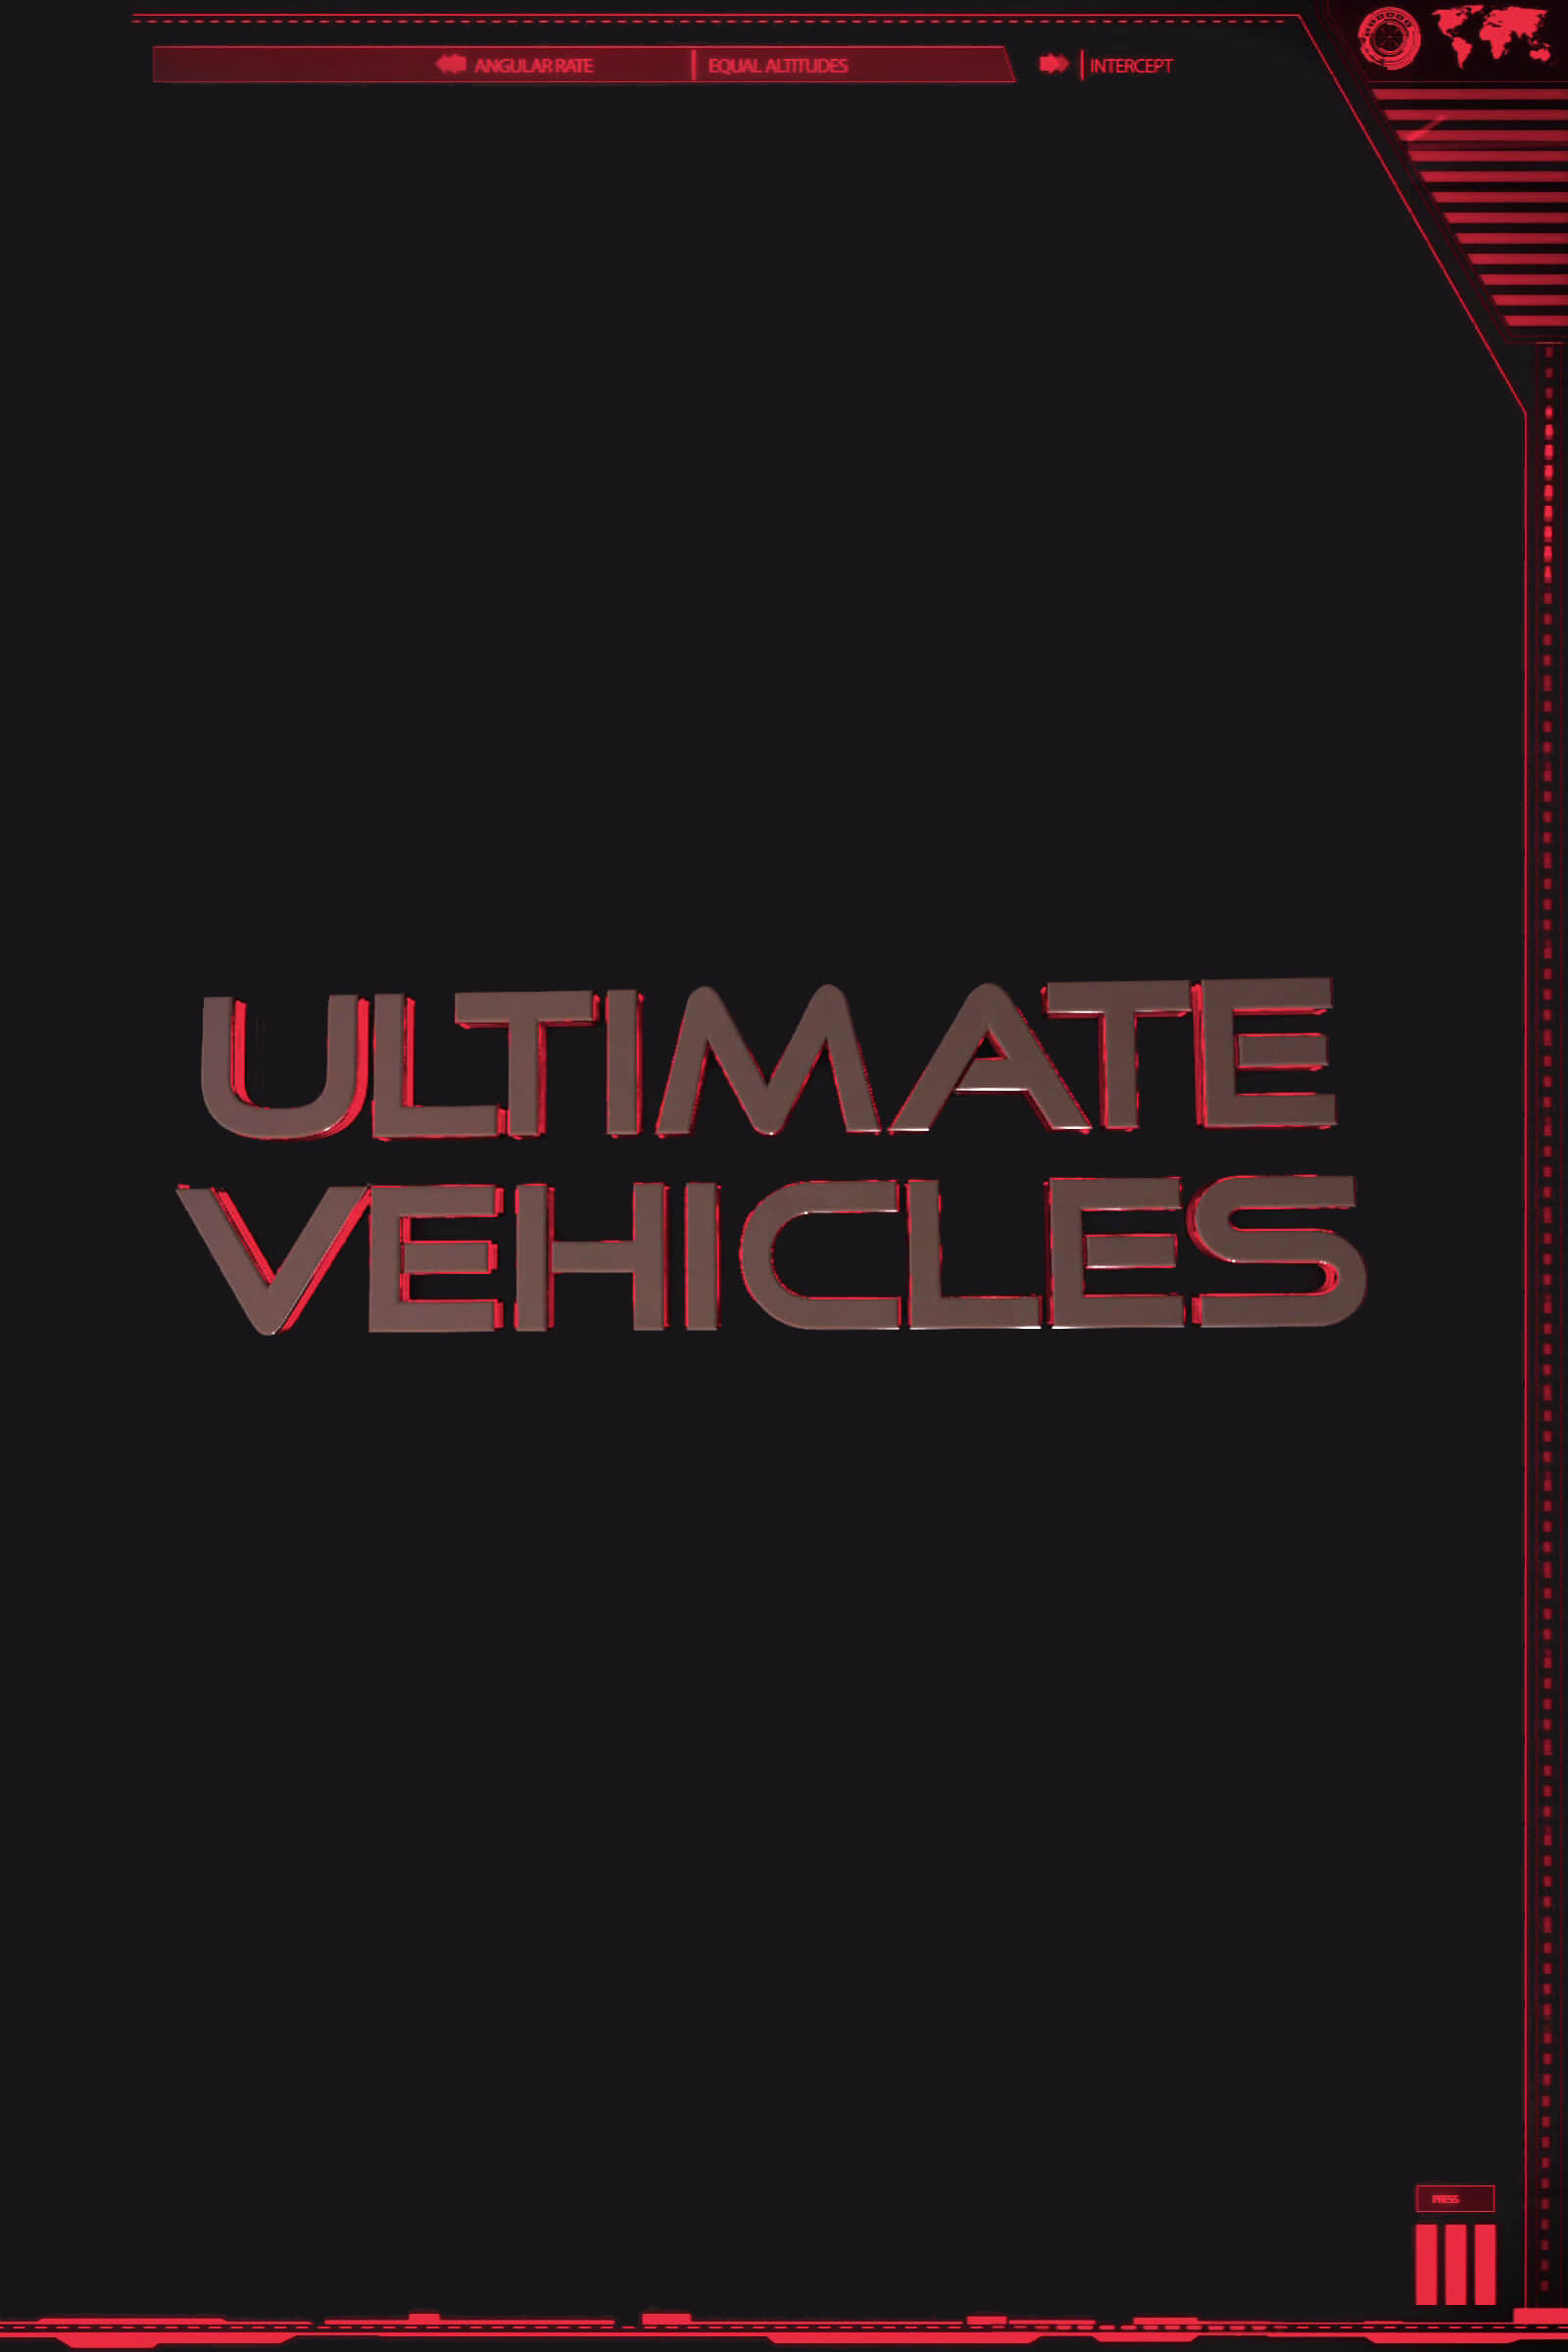 Ultimate Vehicles TV Shows About Engineering